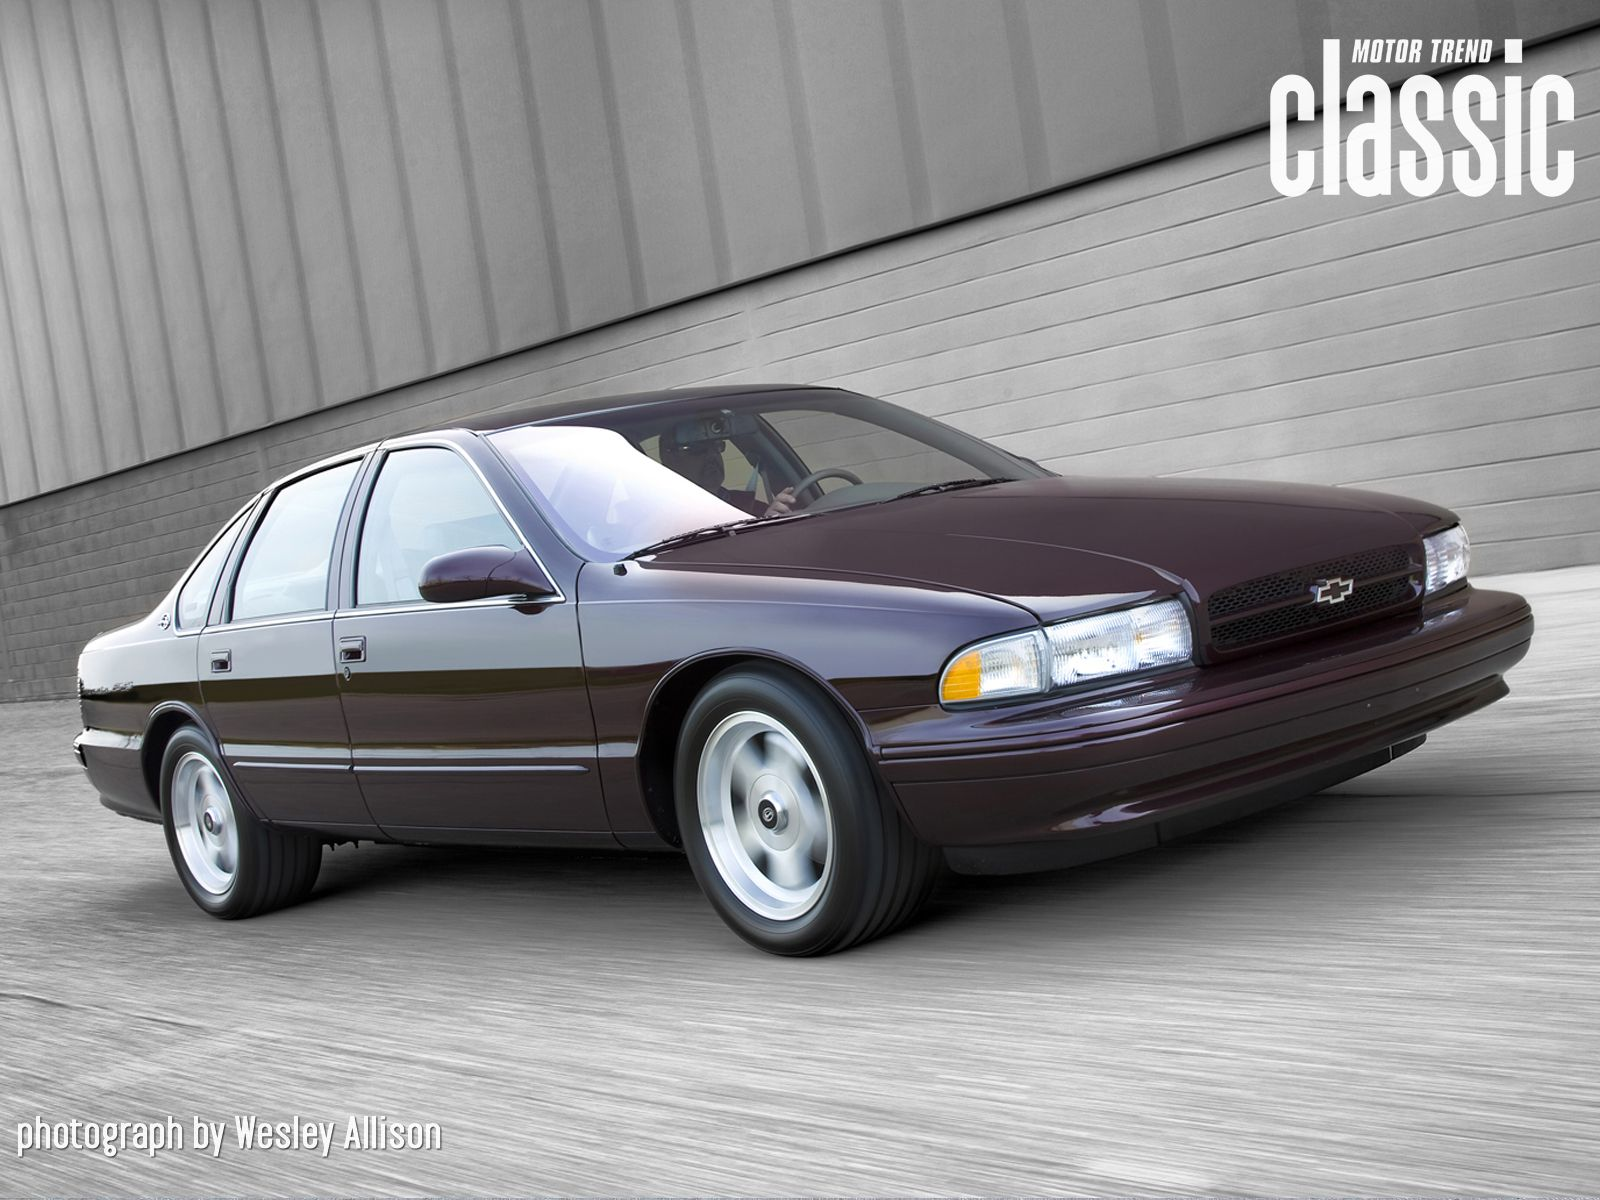 1996 chevy impala ss a true sleeper photographed by wesley allison general motors pinterest chevy impala ss chevy impala and impalas